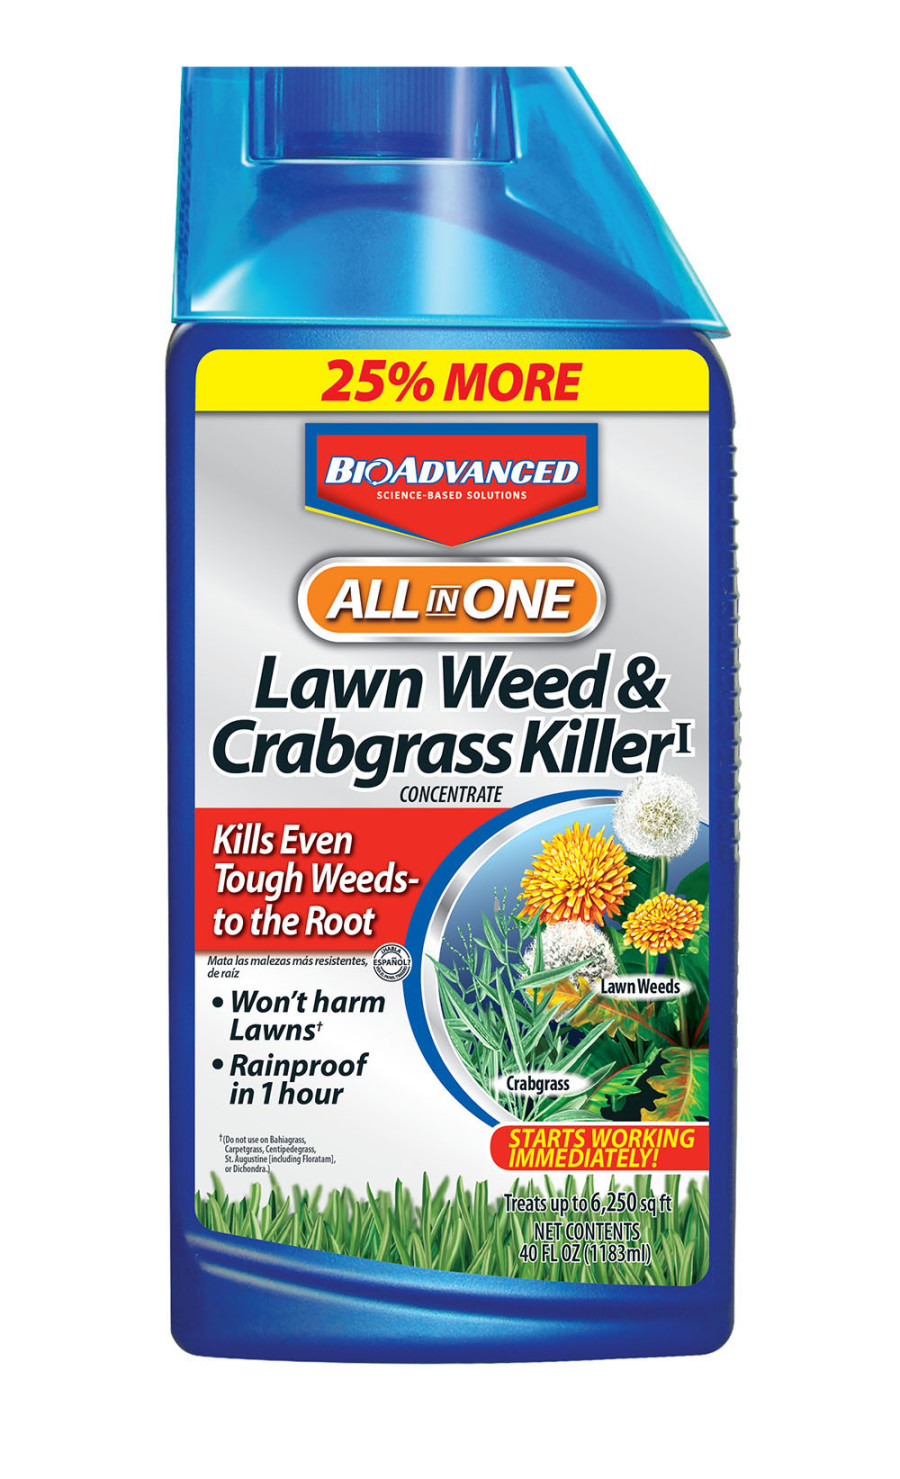 BioAdvanced All In One Lawn Weed & Crabgrass Killer Concentrate Floor Display 72ea/40 oz